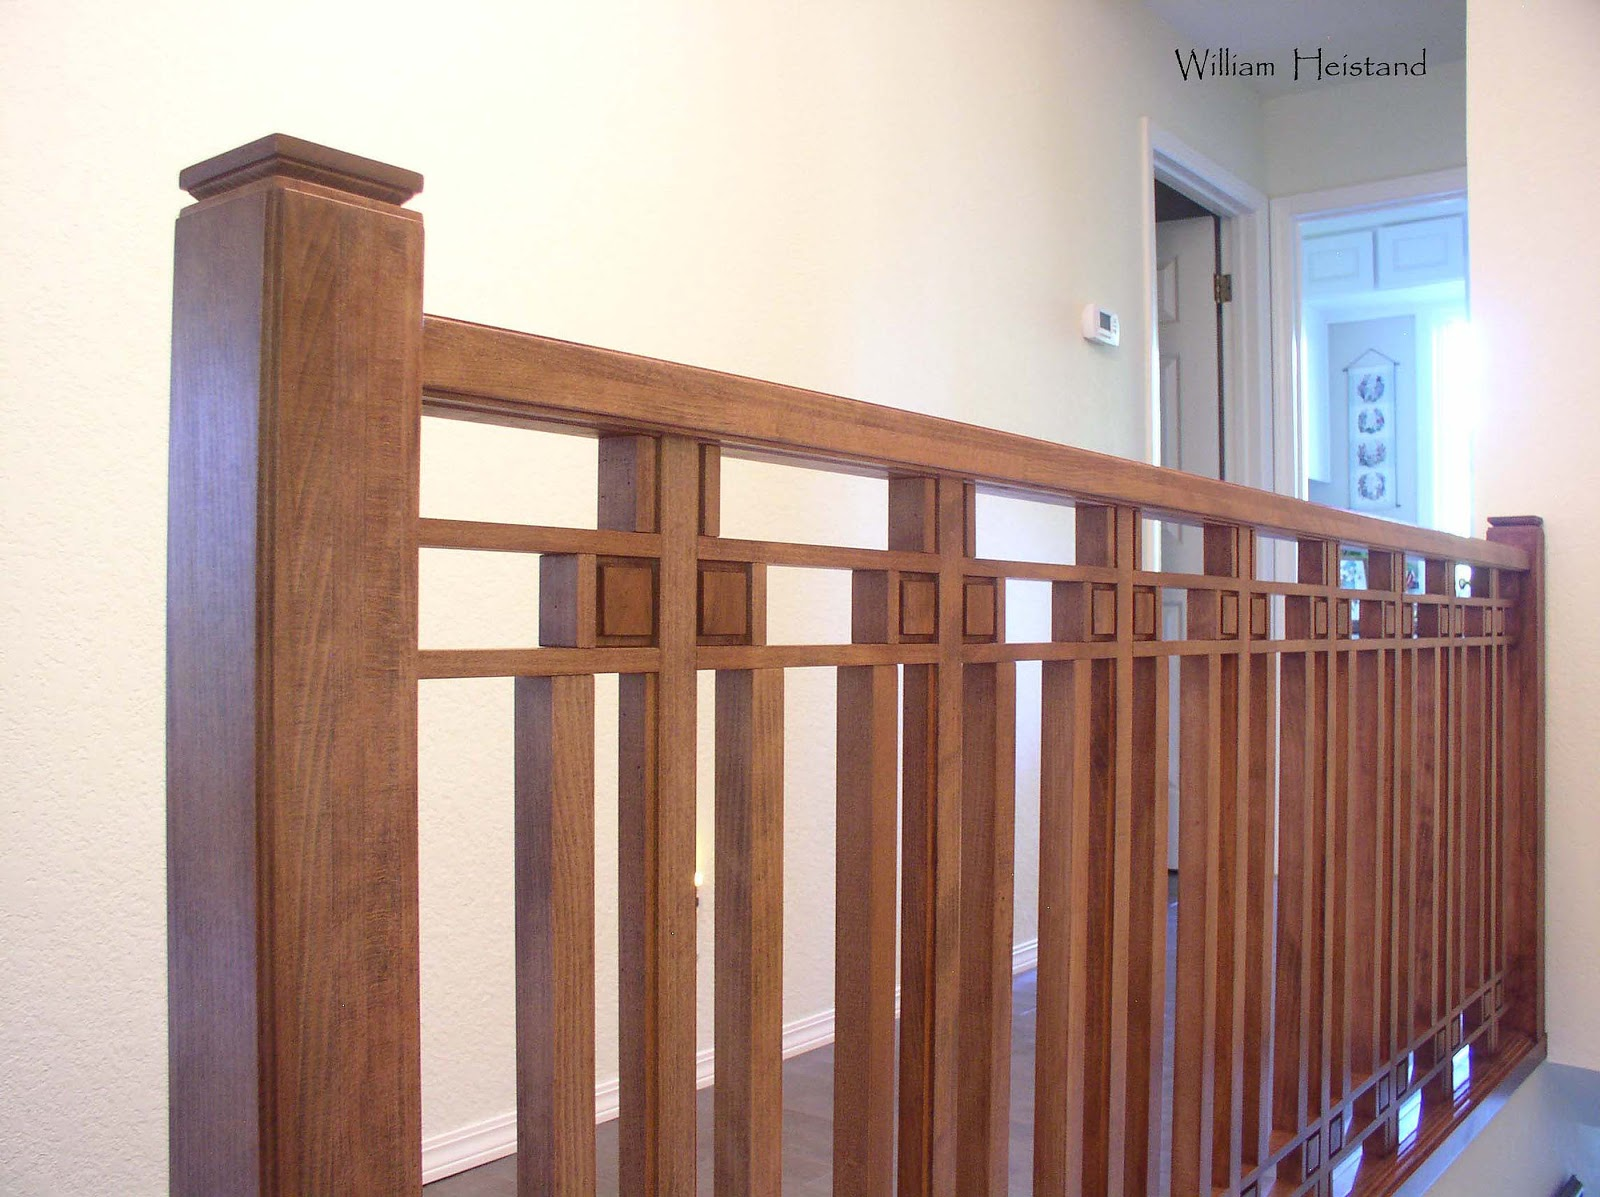 Heistand Woodwork Arts And Crafts Baluster And Skylight